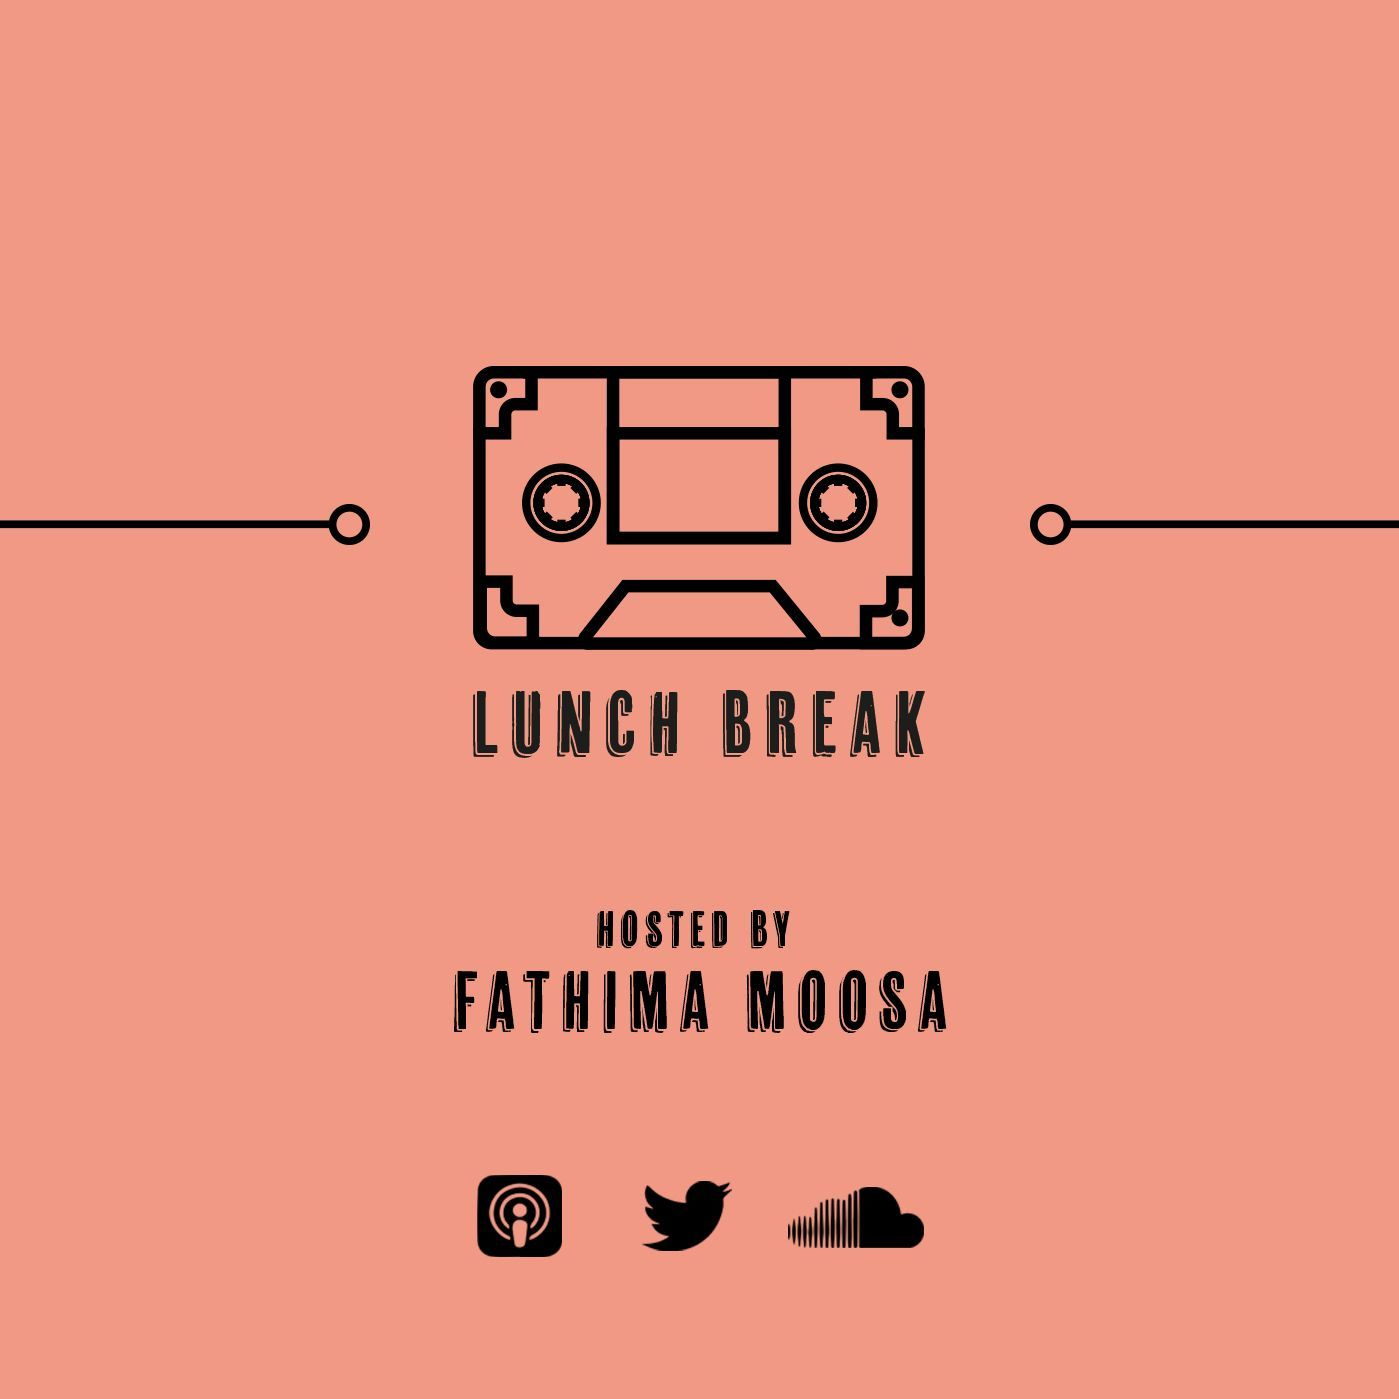 Lunch Break: How much do we as South Africans know about Africa?